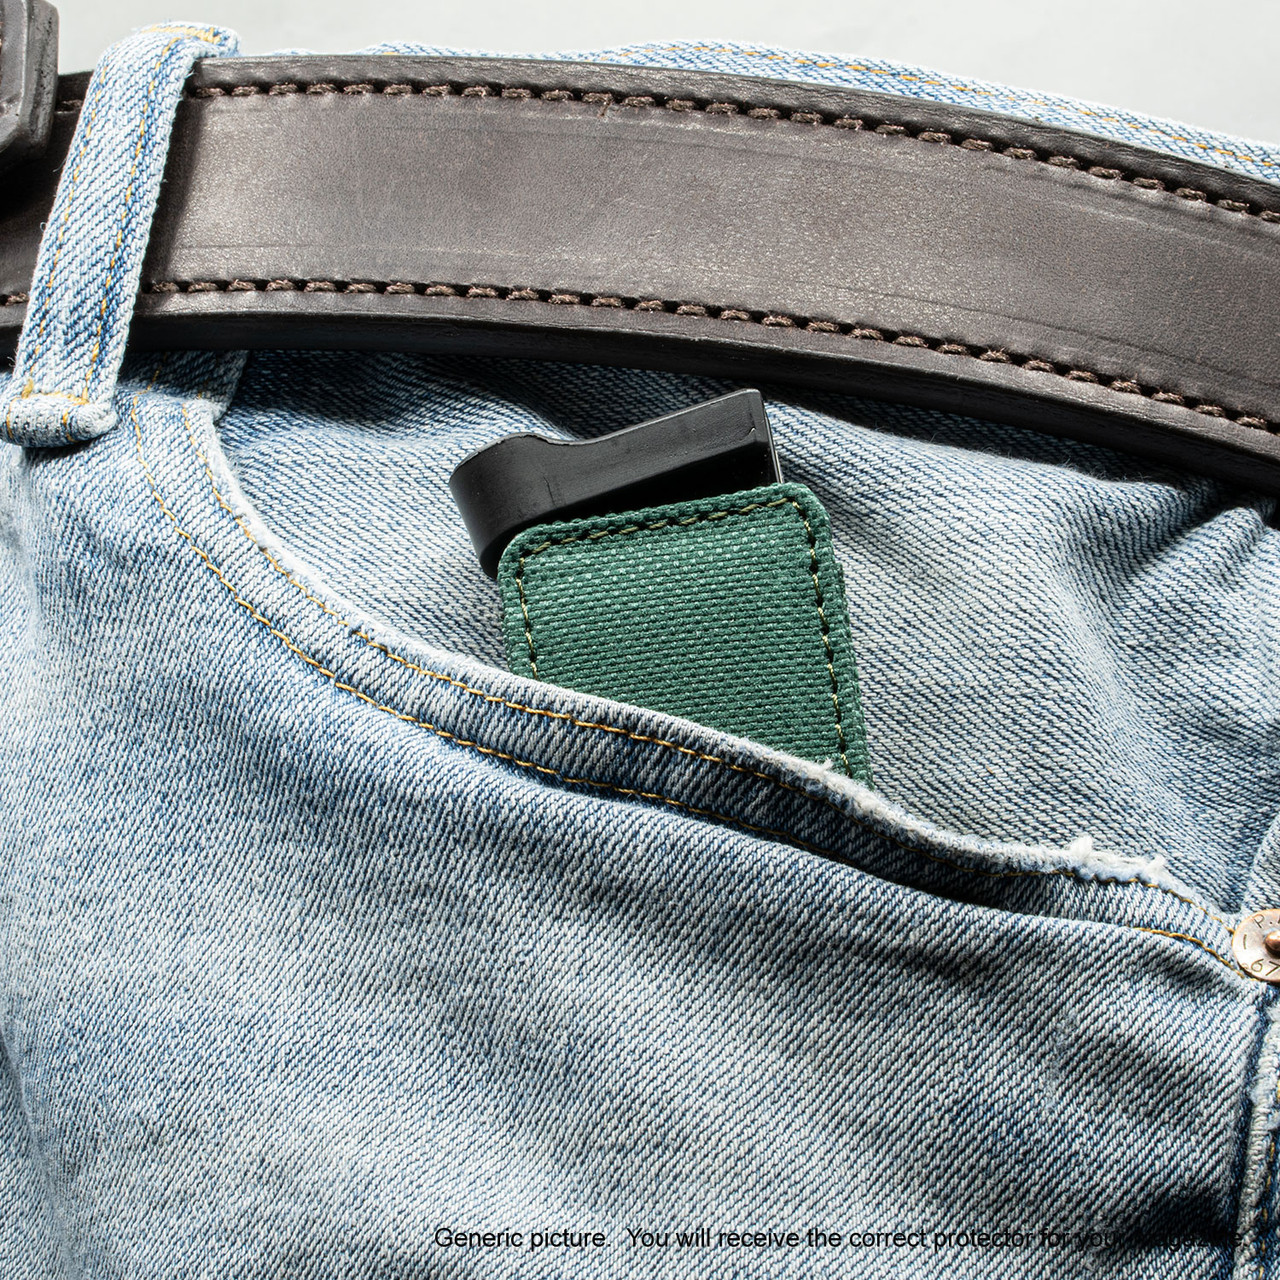 Browning 1911 .380 Green Covert Magazine Pocket Protector